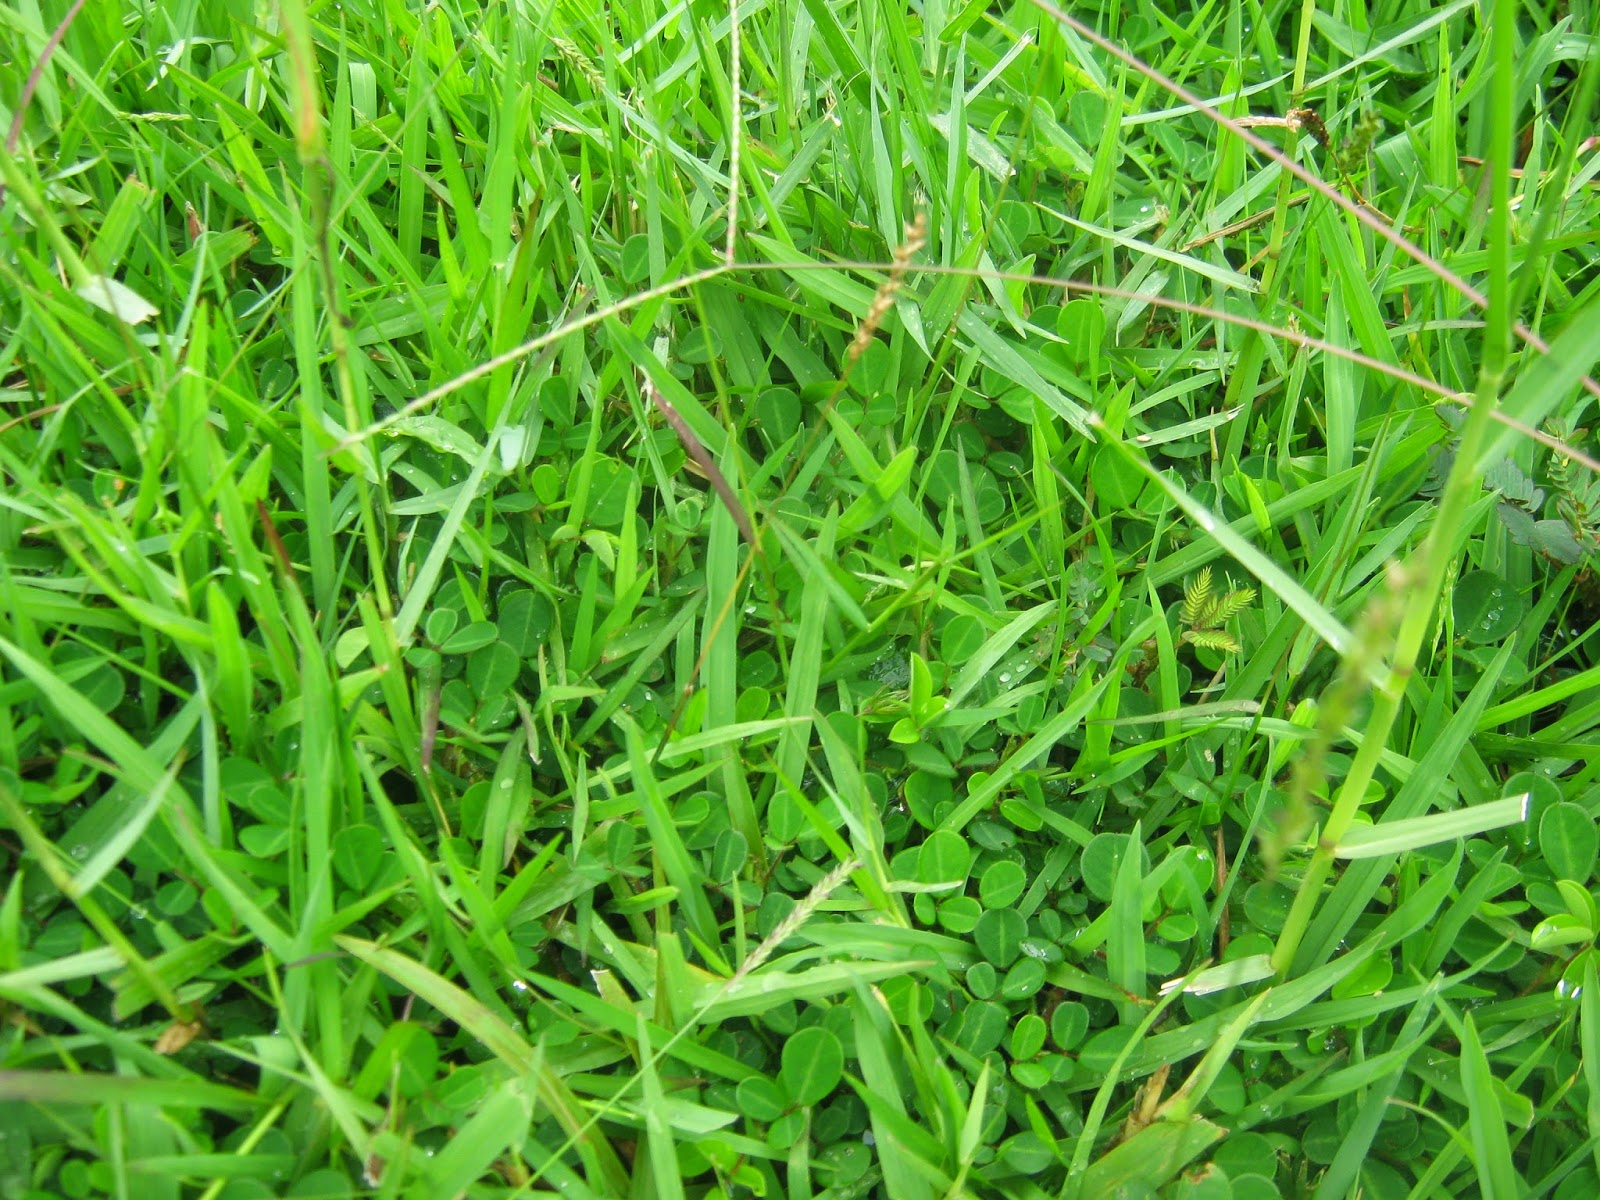 Types of lawn grass weeds - Controlling A Grassy Weed In A Lawn Grass Is Difficult Since Most Chemicals Cannot Distinguish Between Good And Bad Grass Species